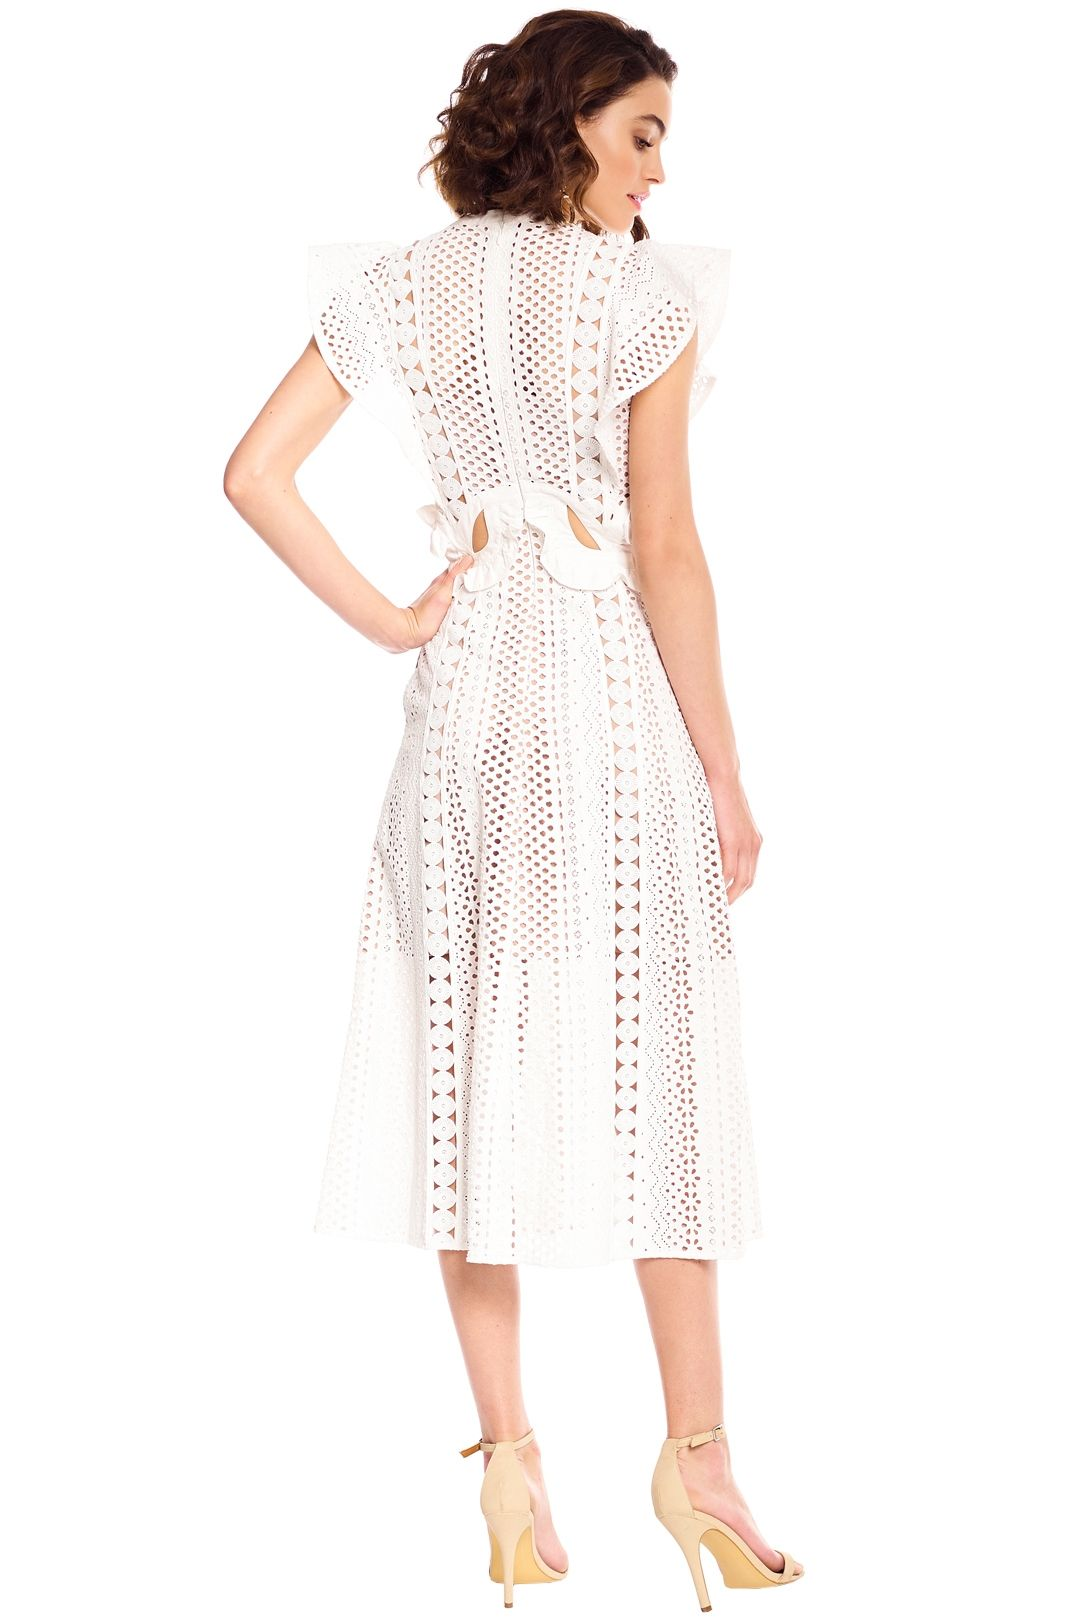 Self Portrait - Embroidered Cut-Out Midi Dress - White - Back